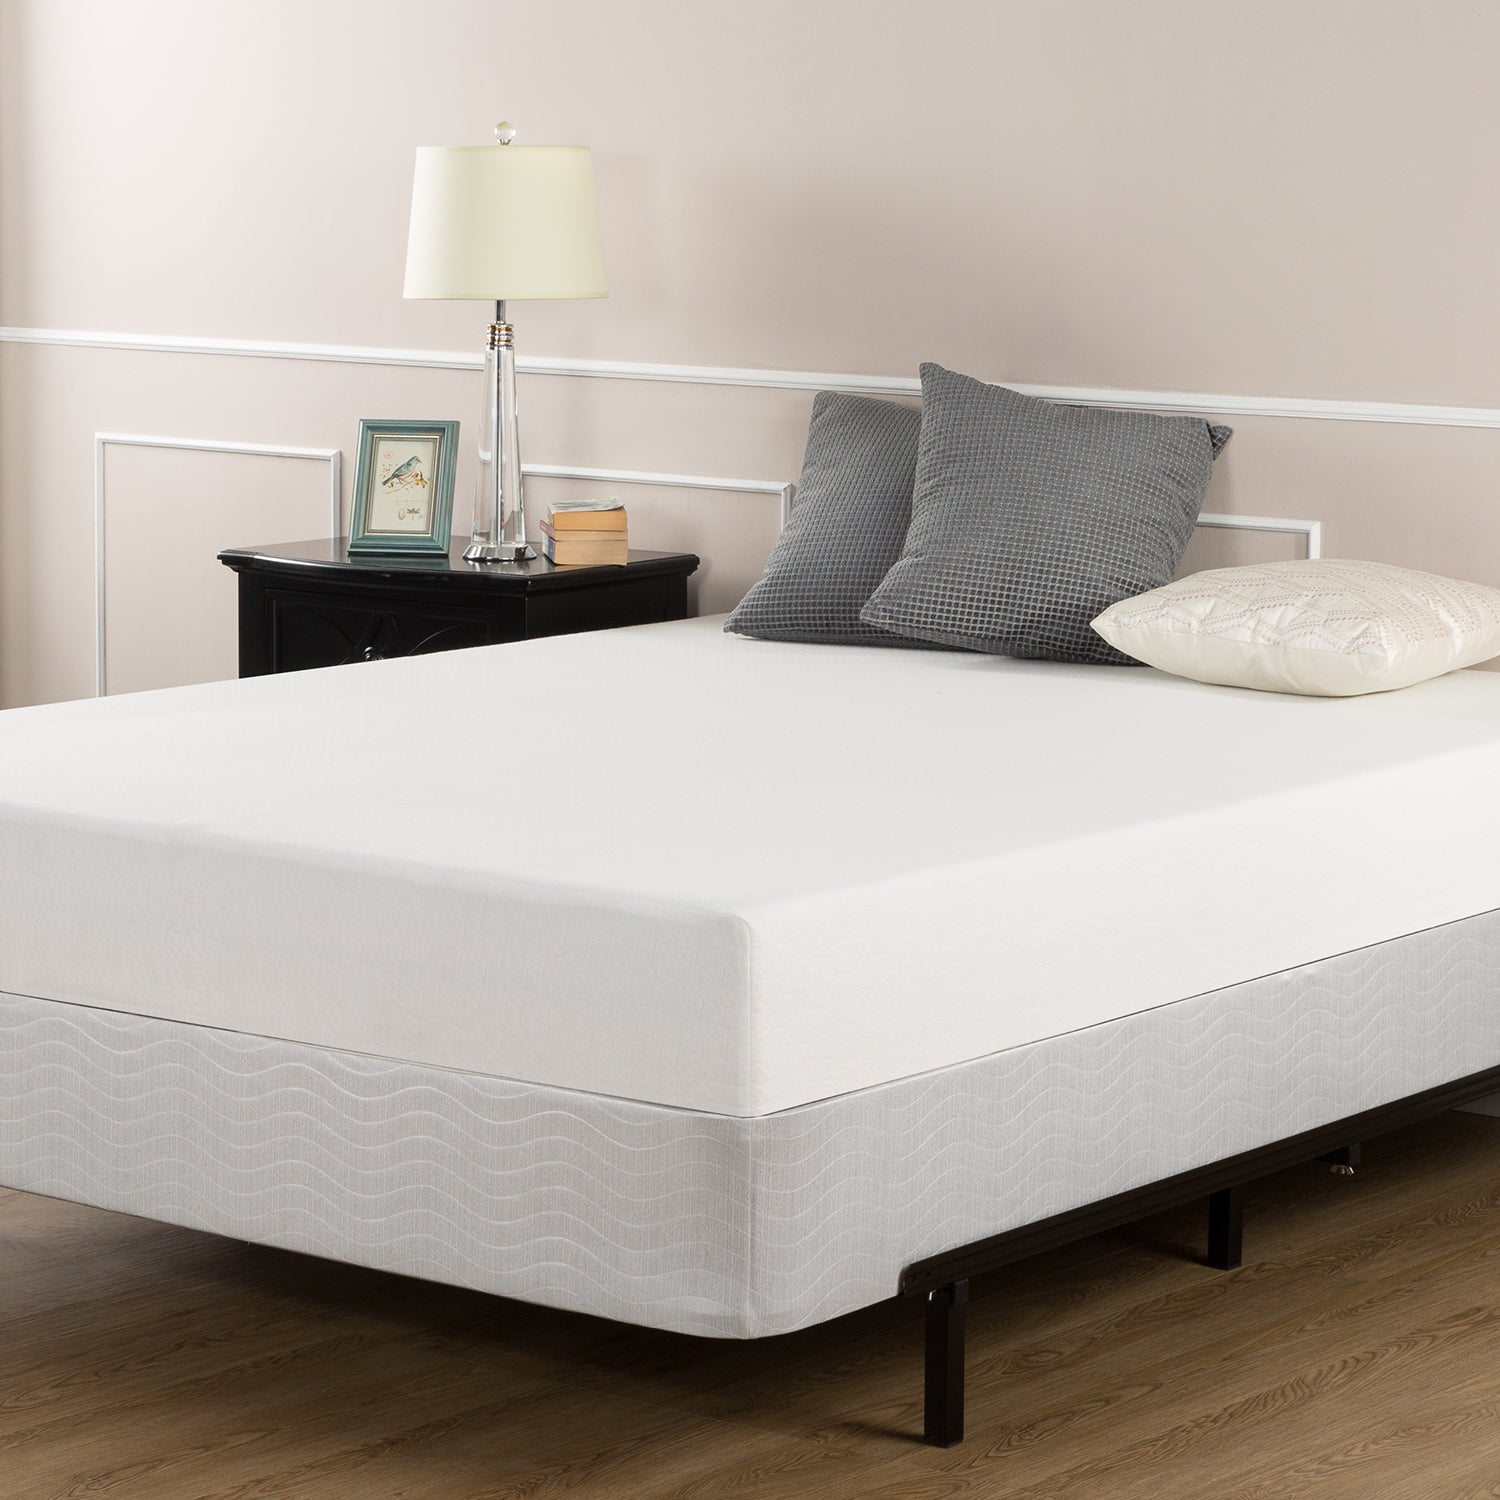 Shop Priage By Zinus 6 Inch Full Size Memory Foam Mattress And Box